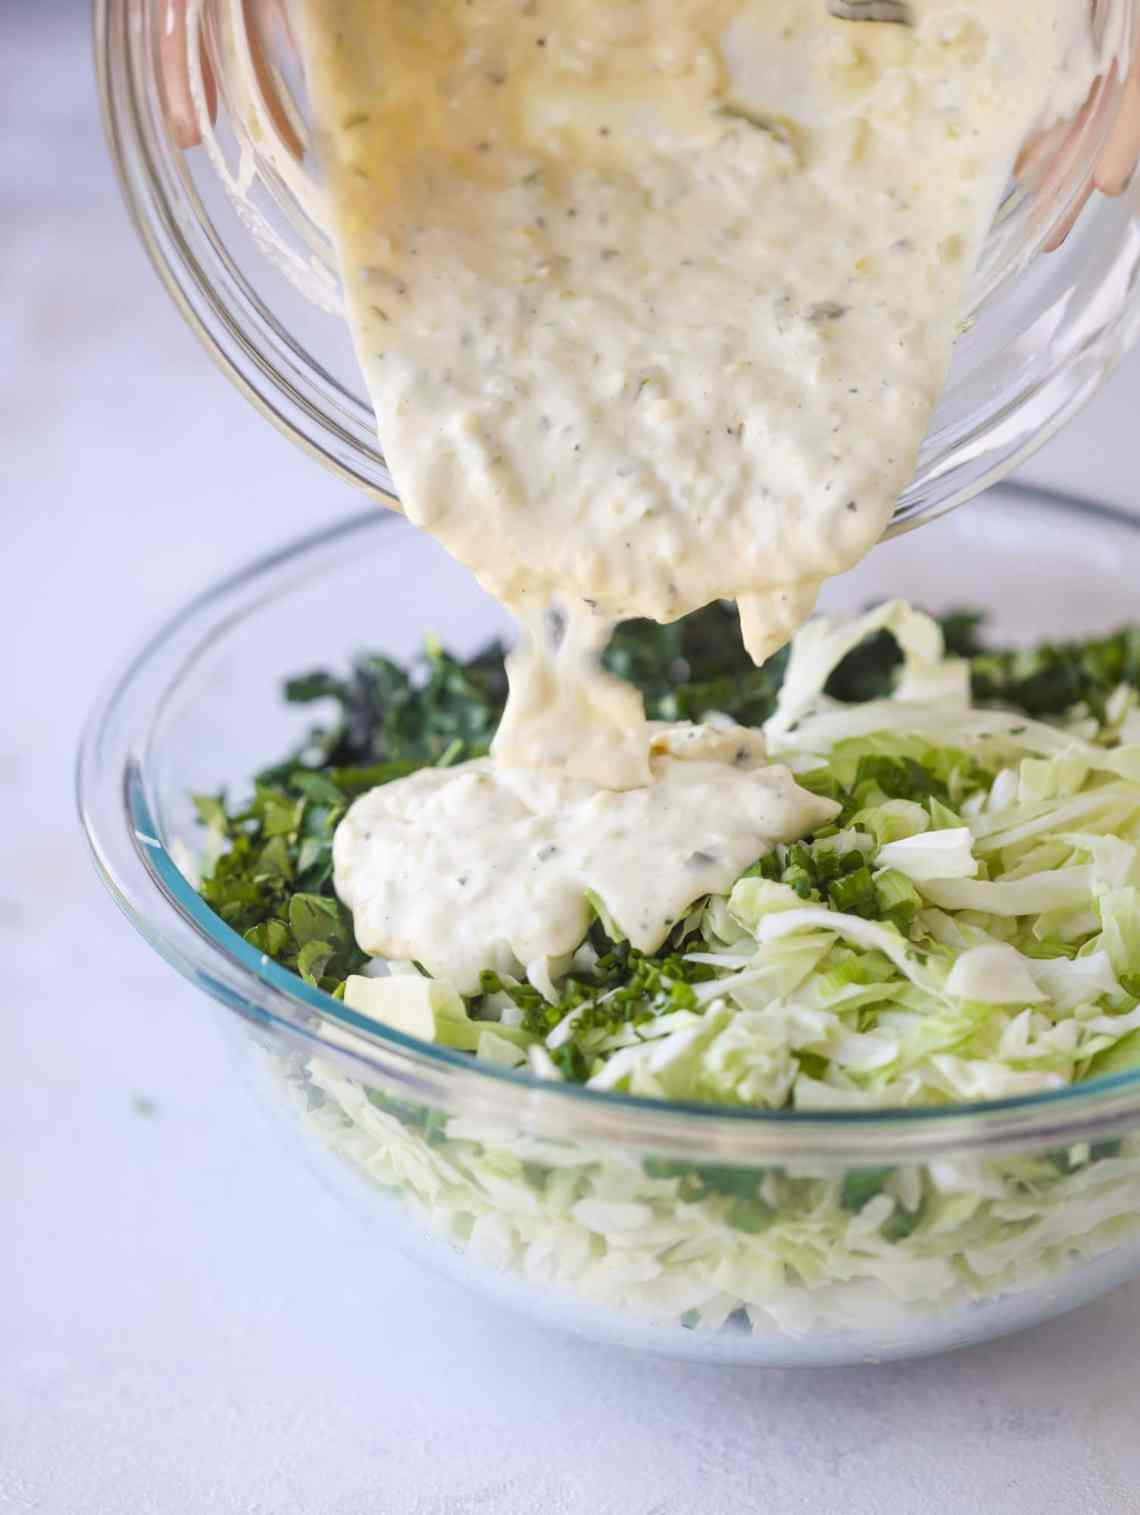 A light and crispy fish sandwich made with a simple beer batter and topped with a hearty, creamy kale cole slaw. Loaded with flavor! I howsweeteats.com #crispyfish #sandwich